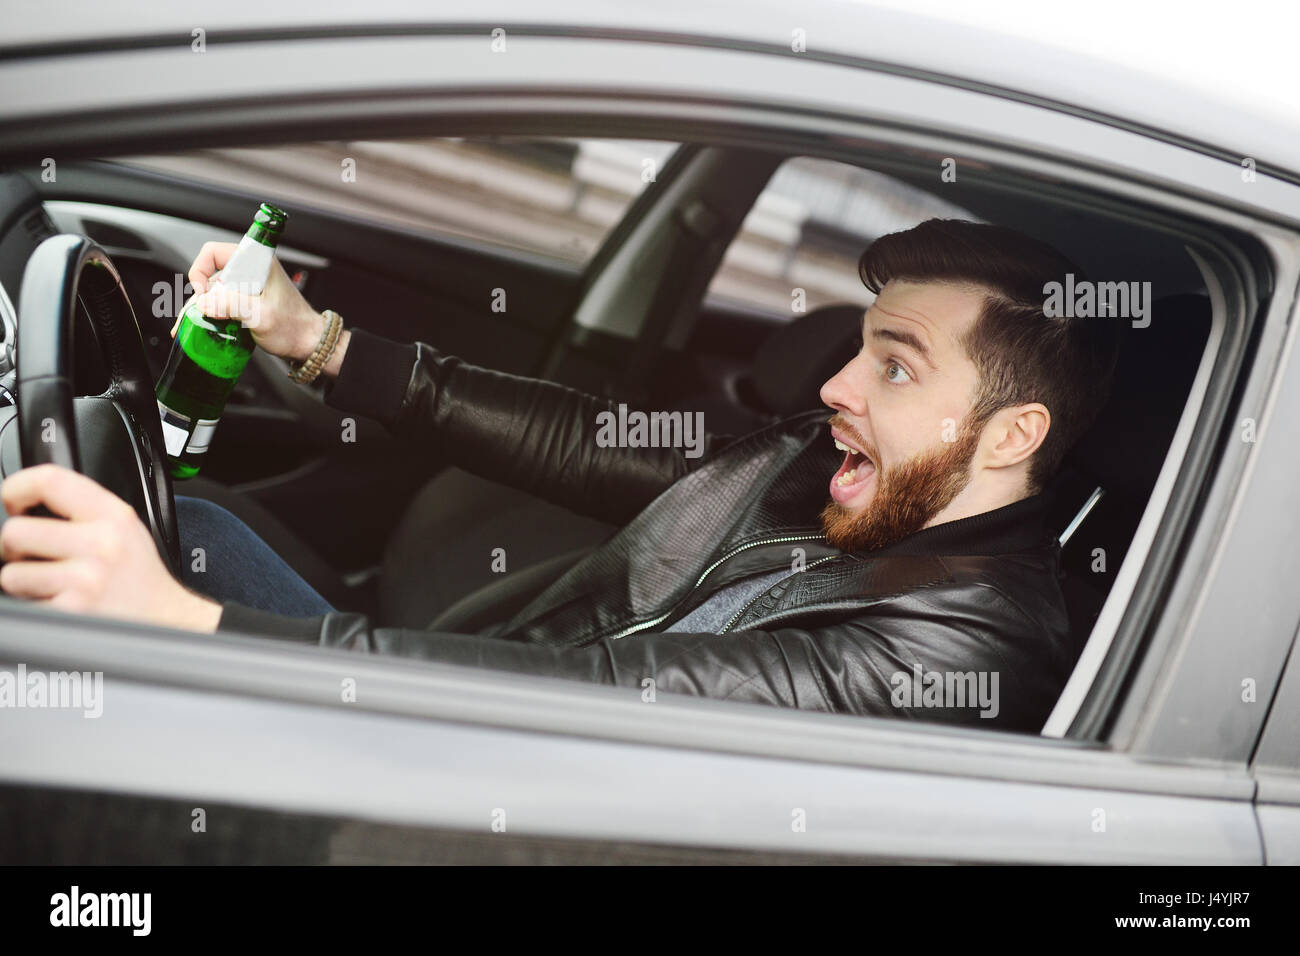 Drunk man with a bottle of beer driving a car - Stock Image